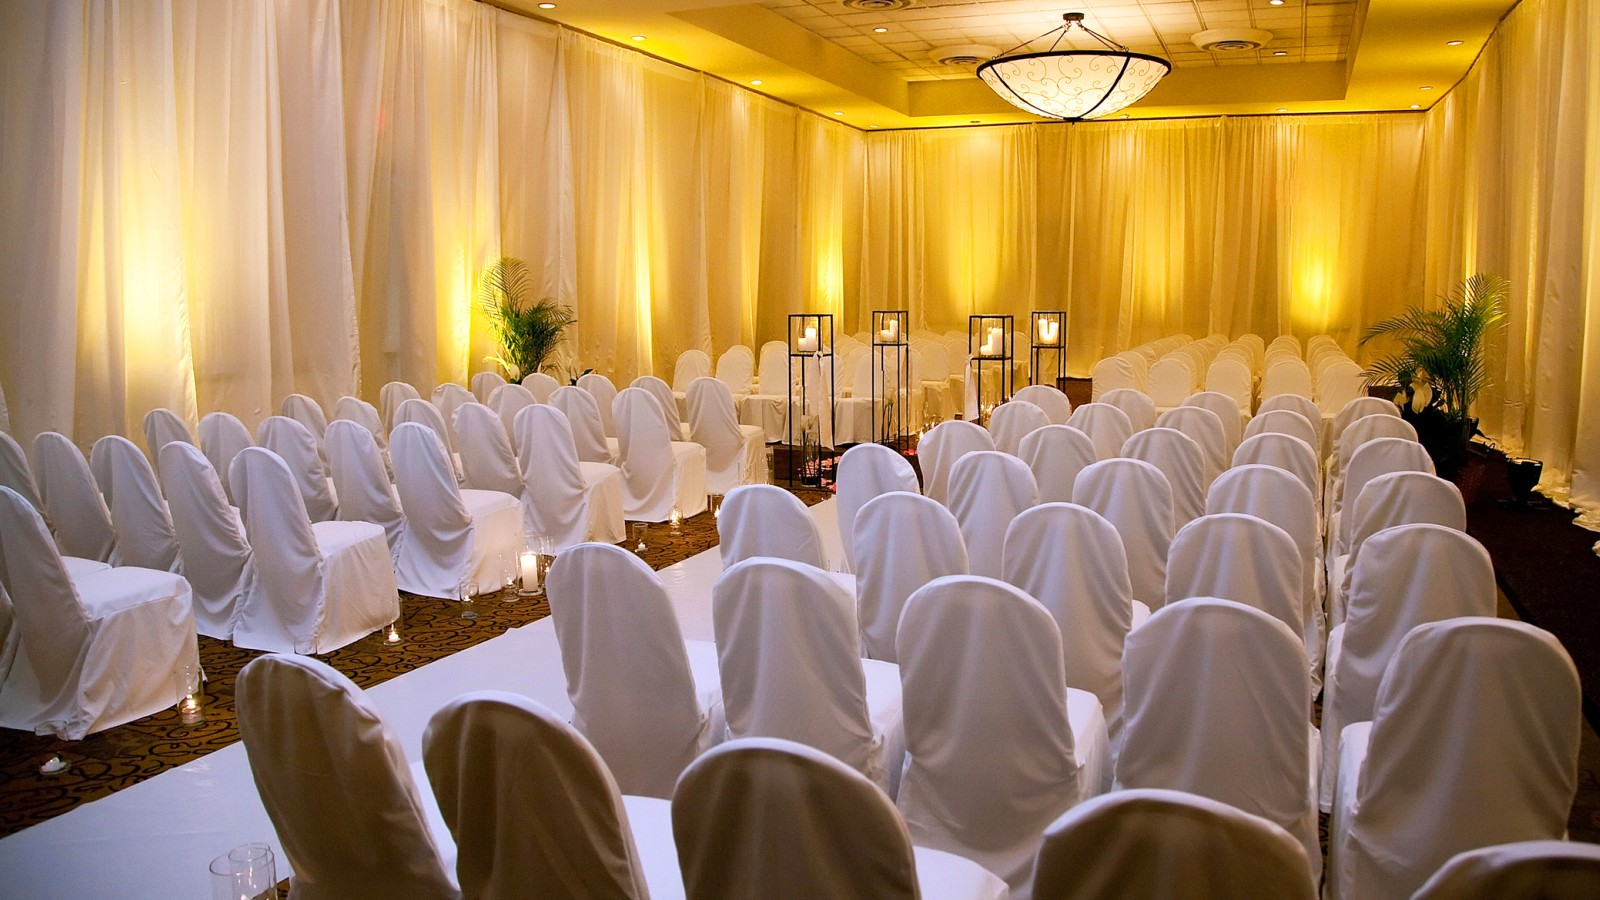 Raleigh Wedding Venues - Sheraton Raleigh Hotel Ceremony